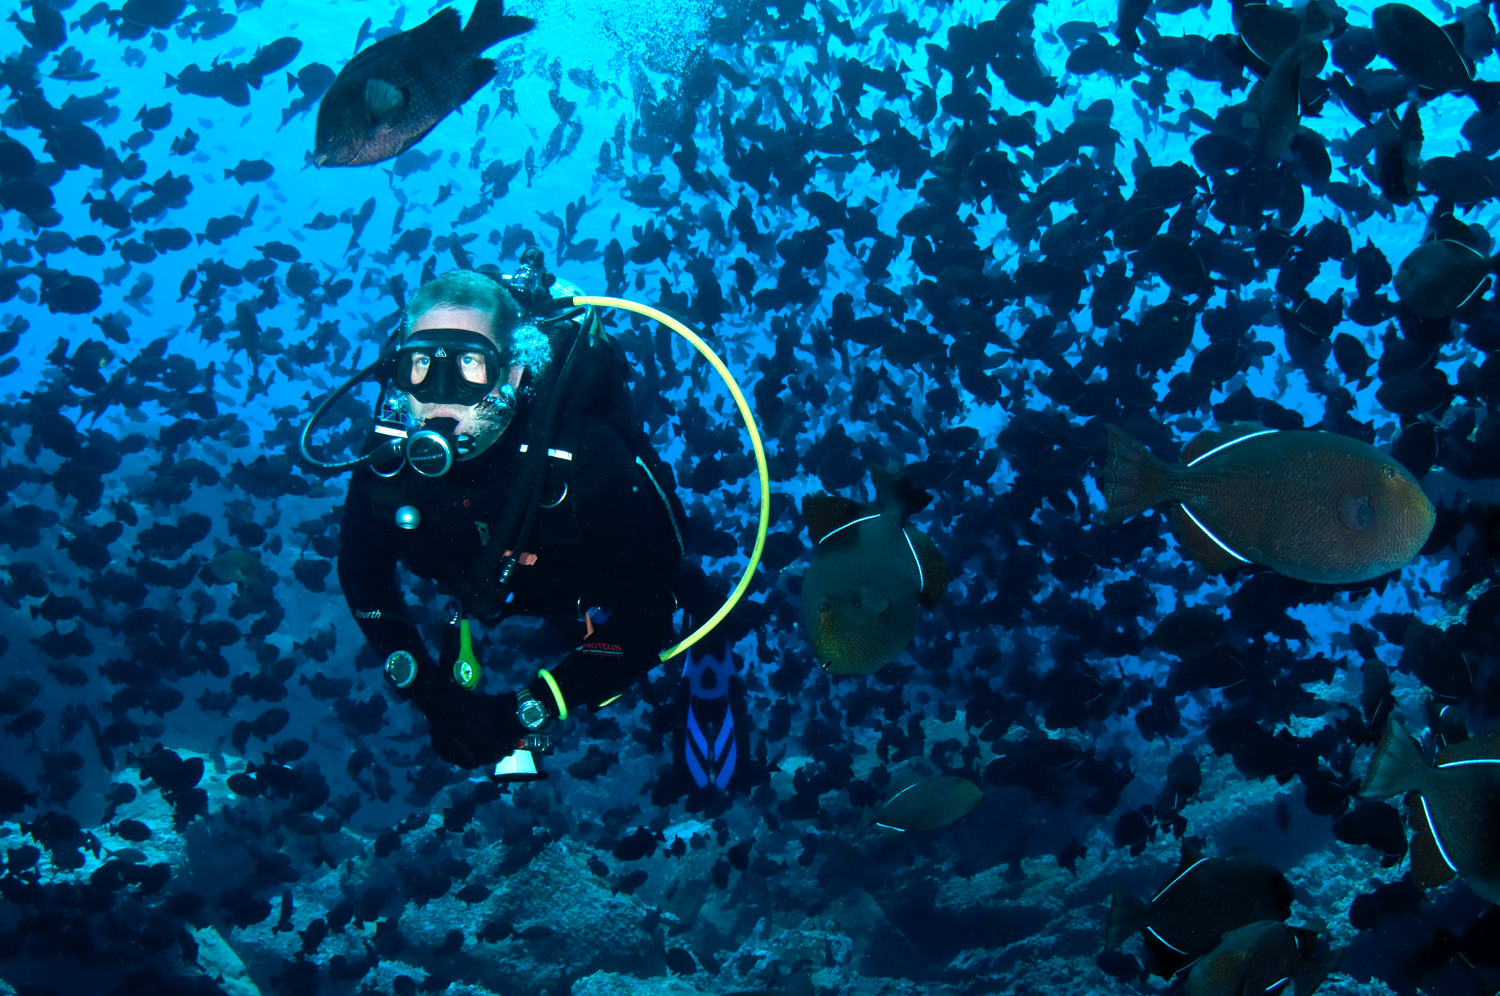 Exotic dive locations have never been so accessible. Explore the worlds oceans beneath the surface.